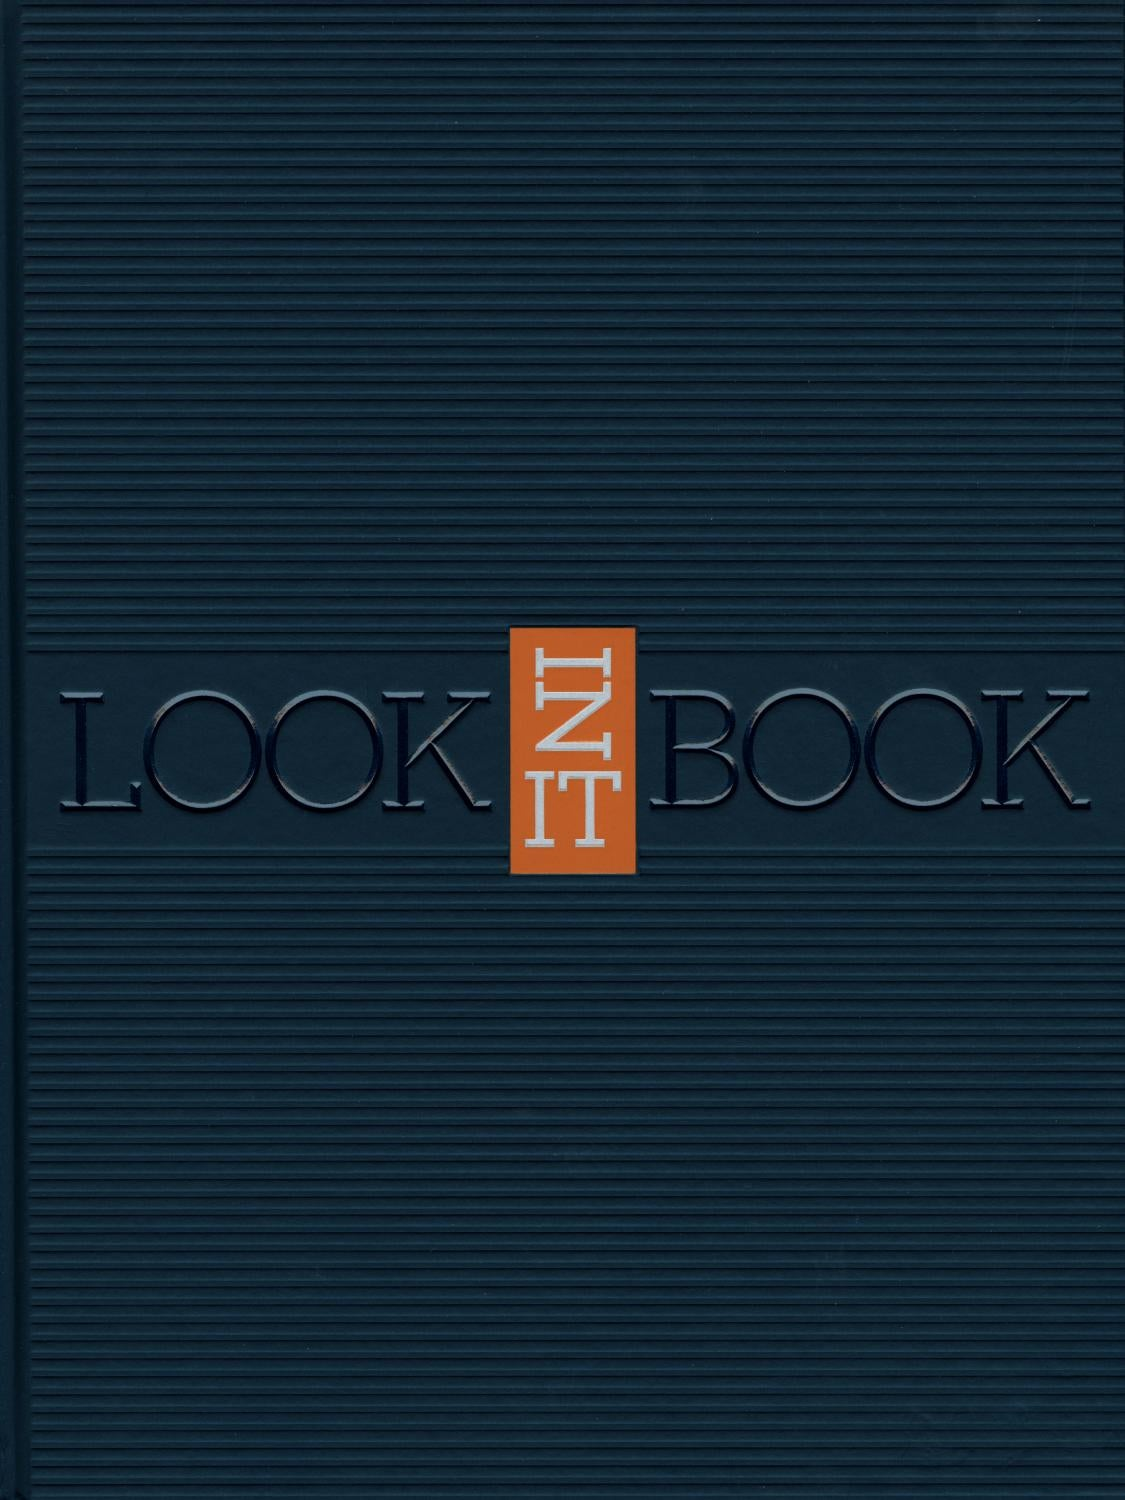 58e4b21c Jostens Look Book 2017 by Jostens Yearbook - issuu